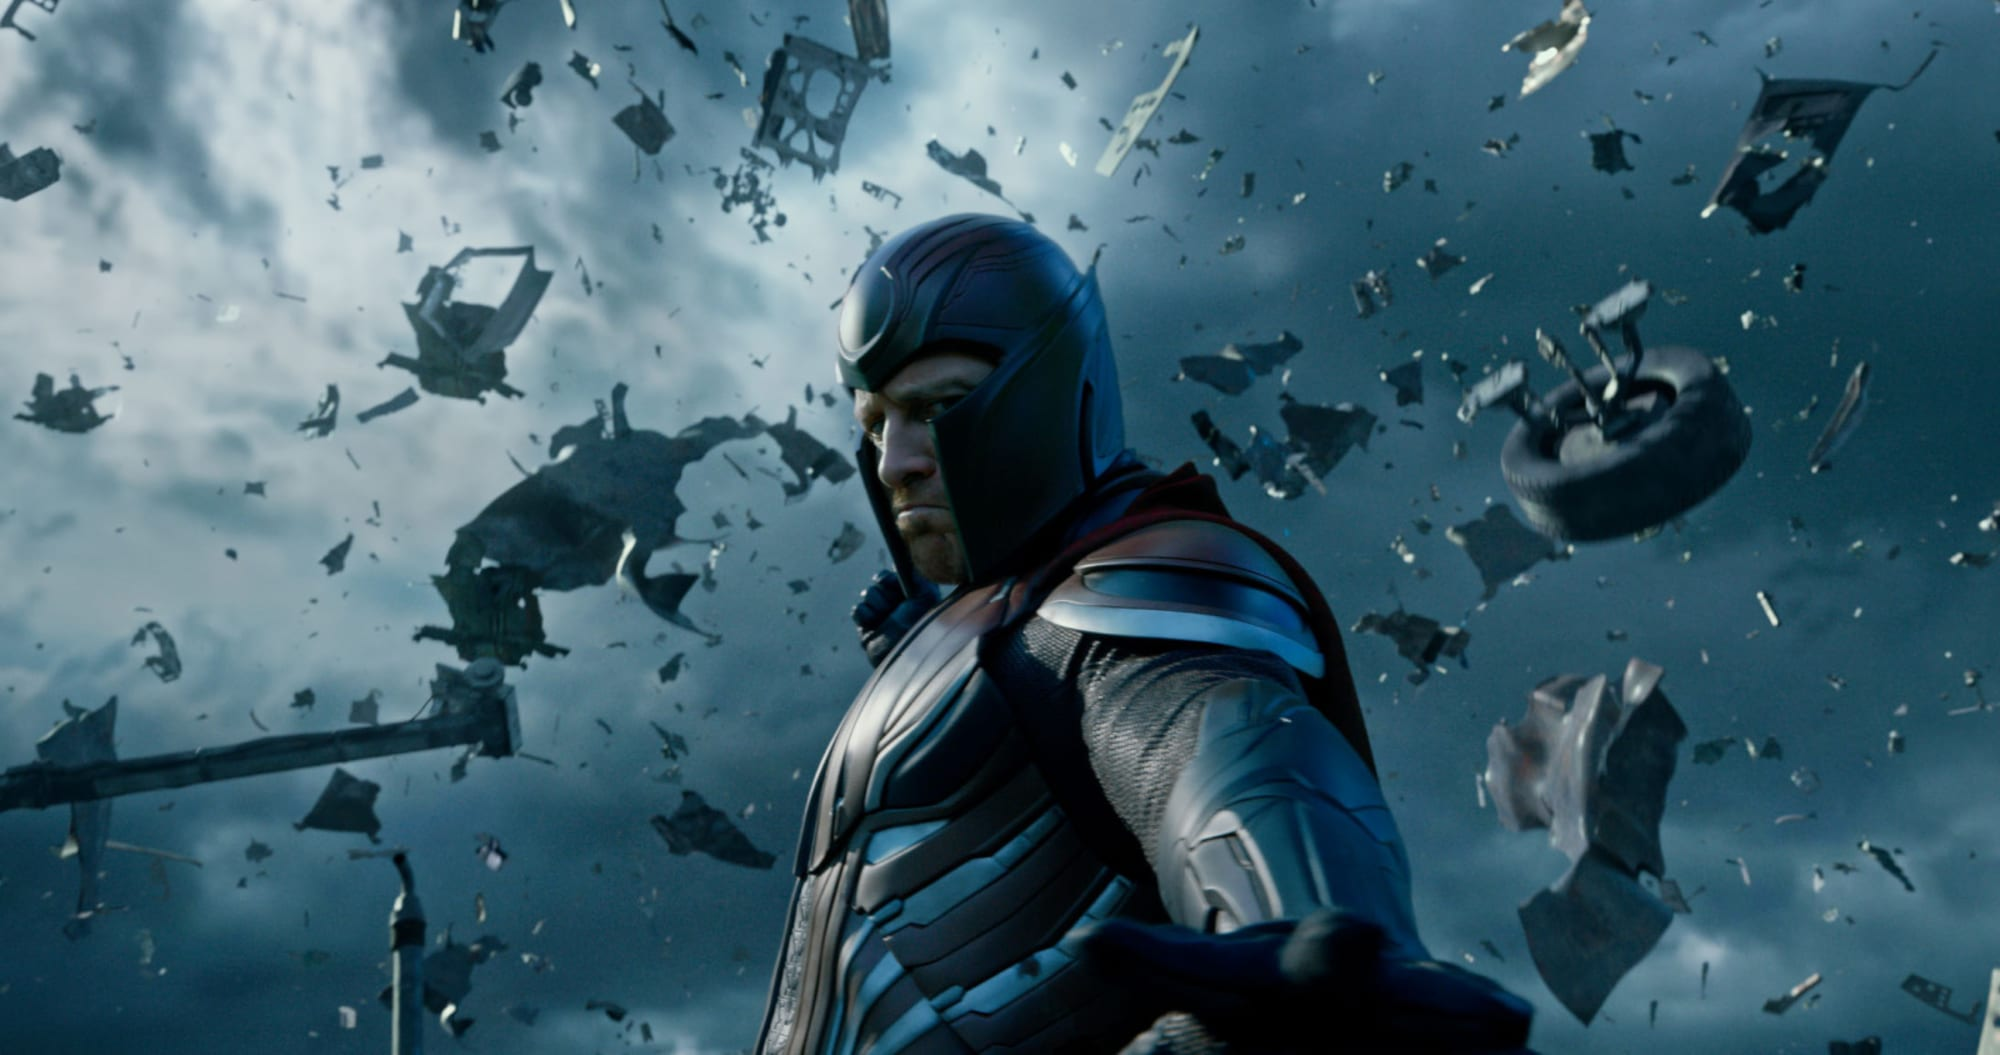 X-Men: Magneto takes on the Avengers in jaw-dropping new Marvel series